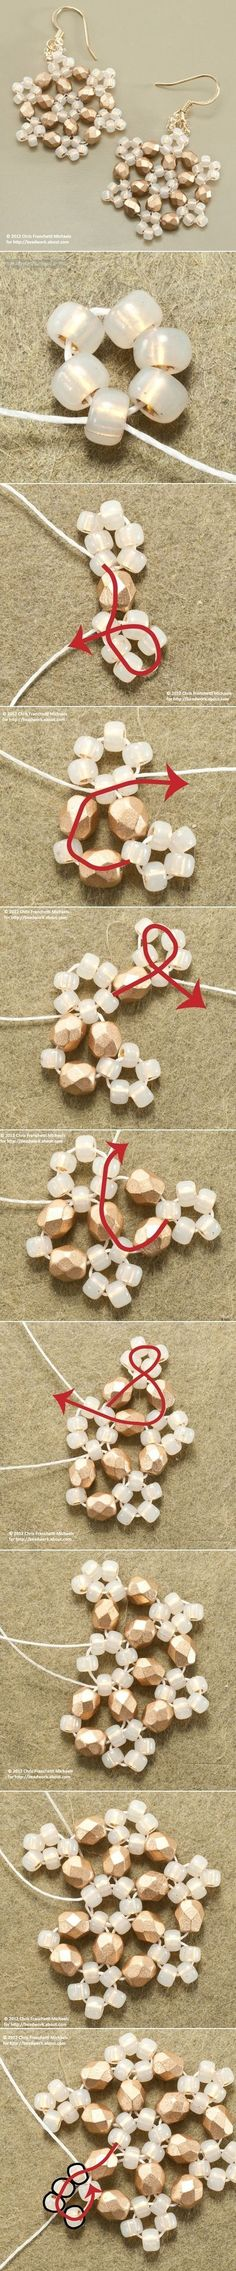 Snowflake Earrings DIY Jewelry Earrings | #DIY: